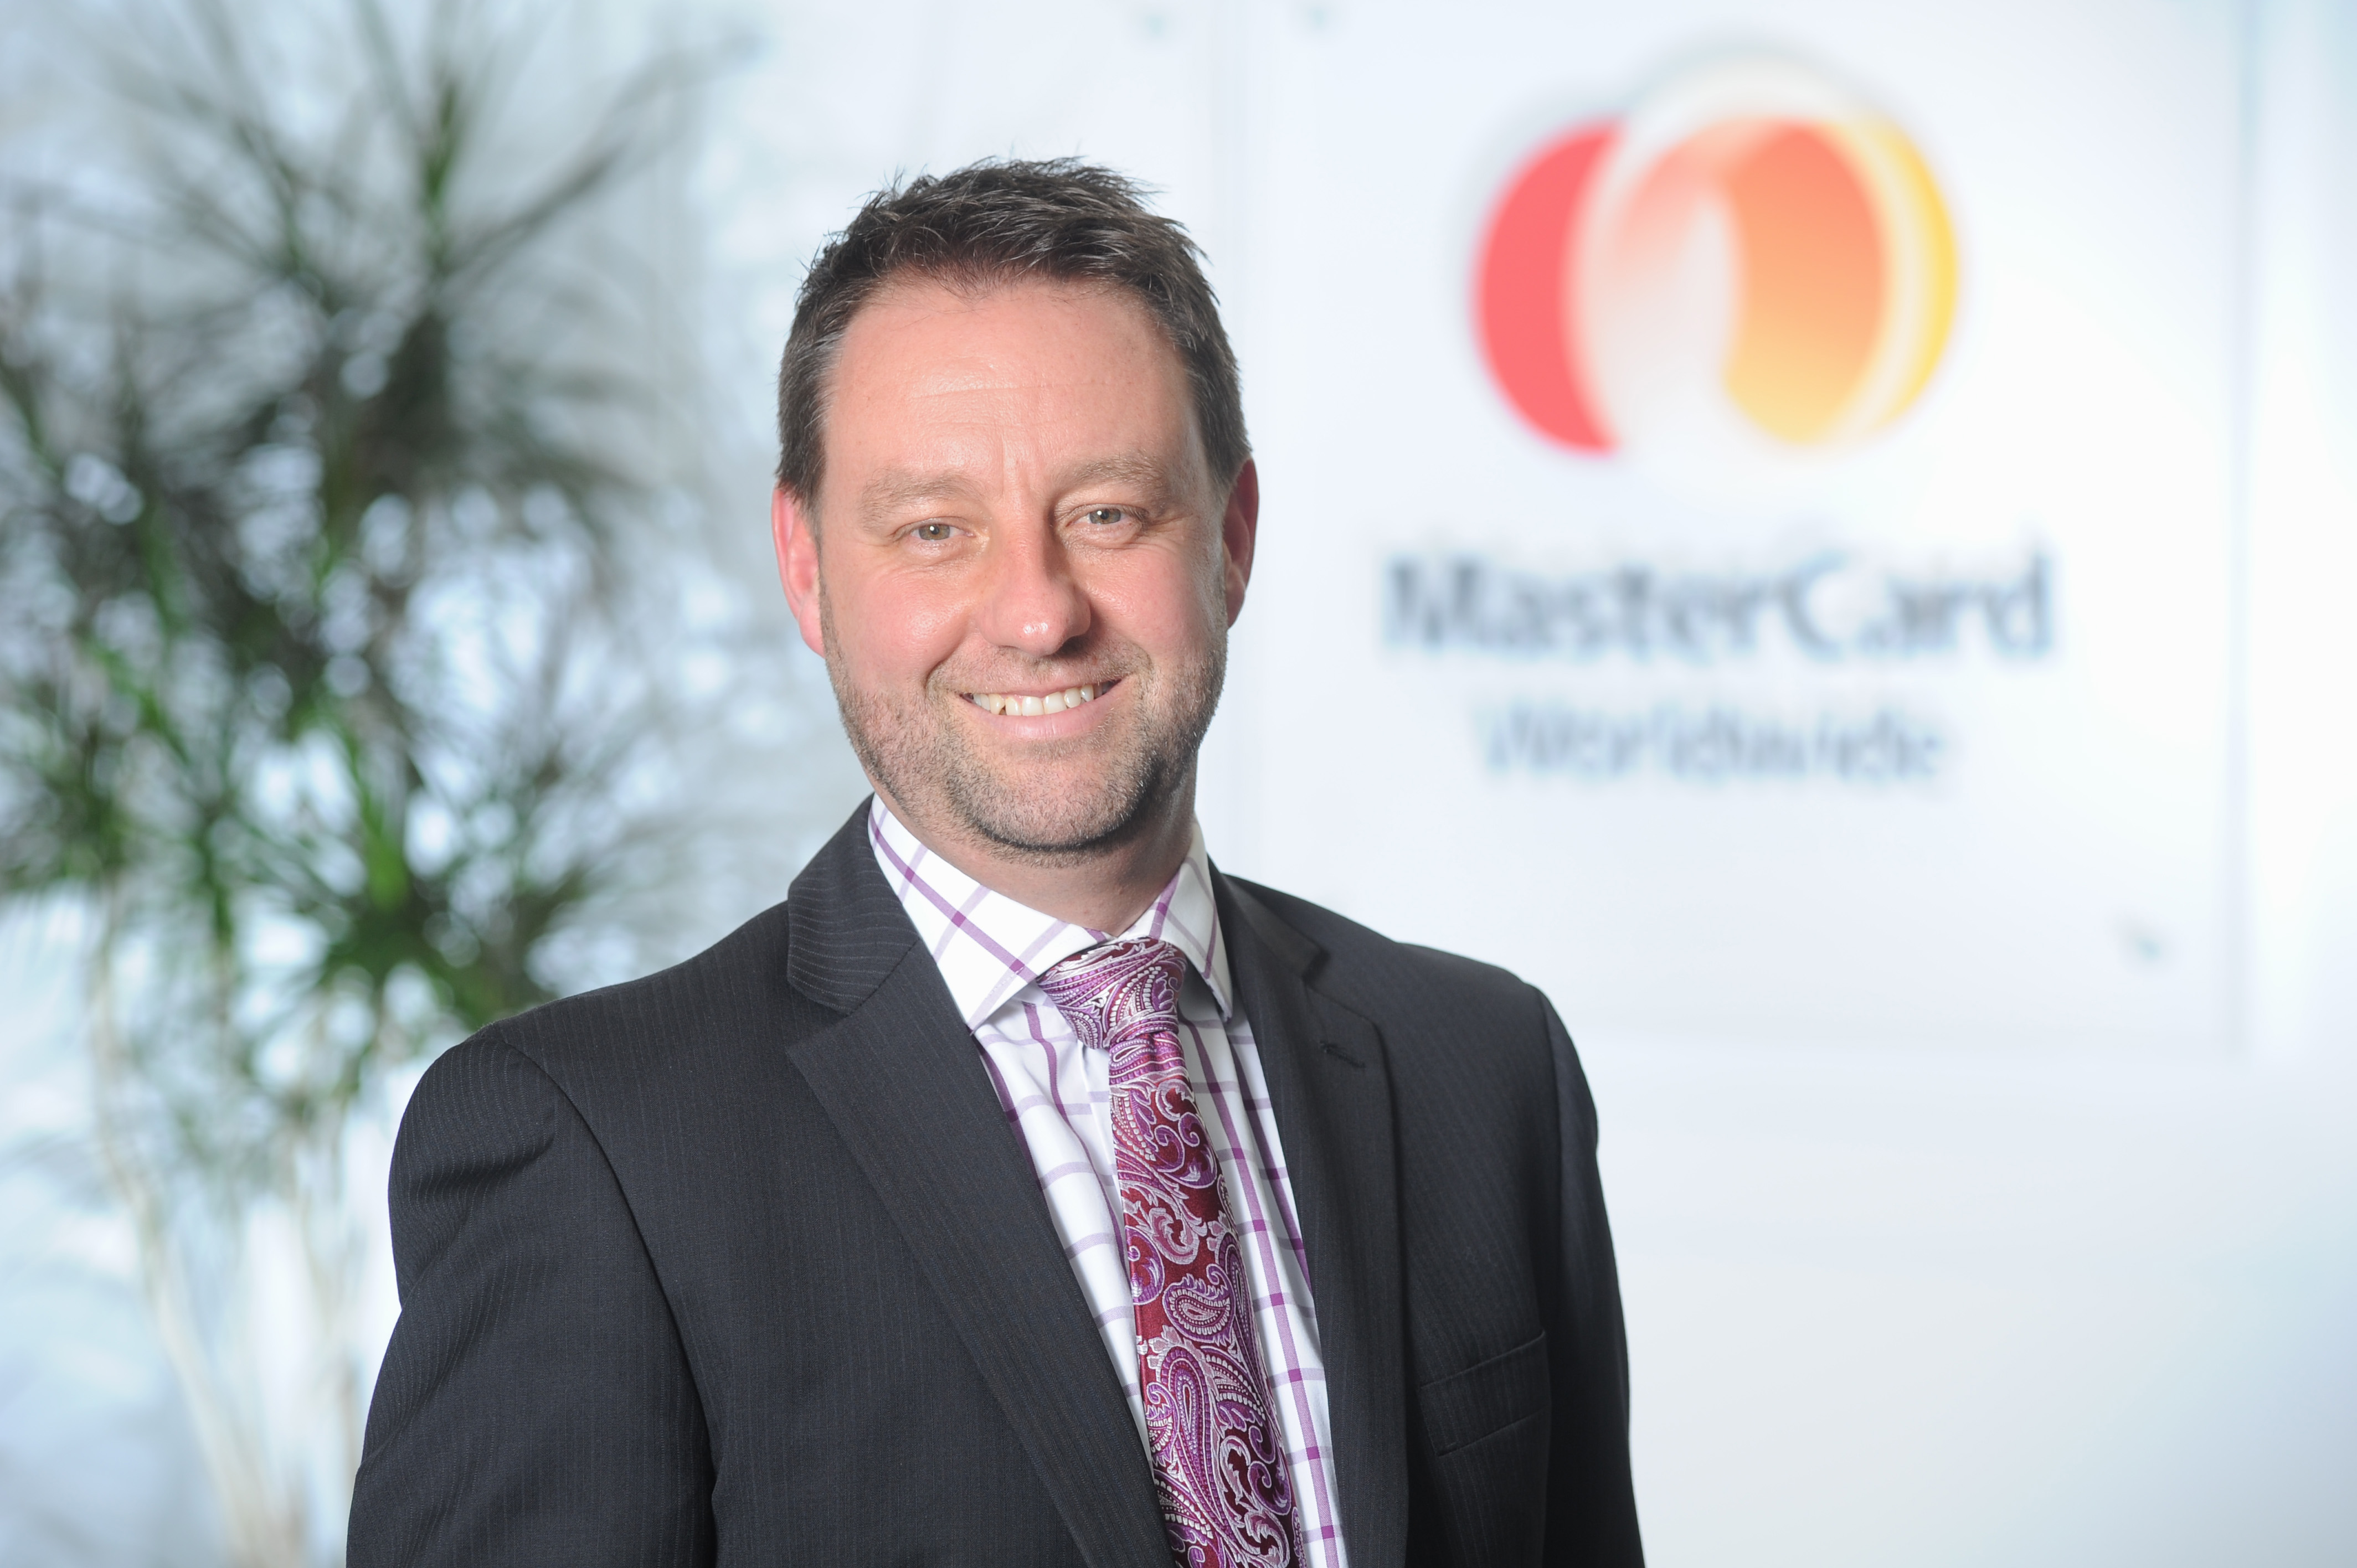 Peter Chisnall, MasterCard NZ Country Manager